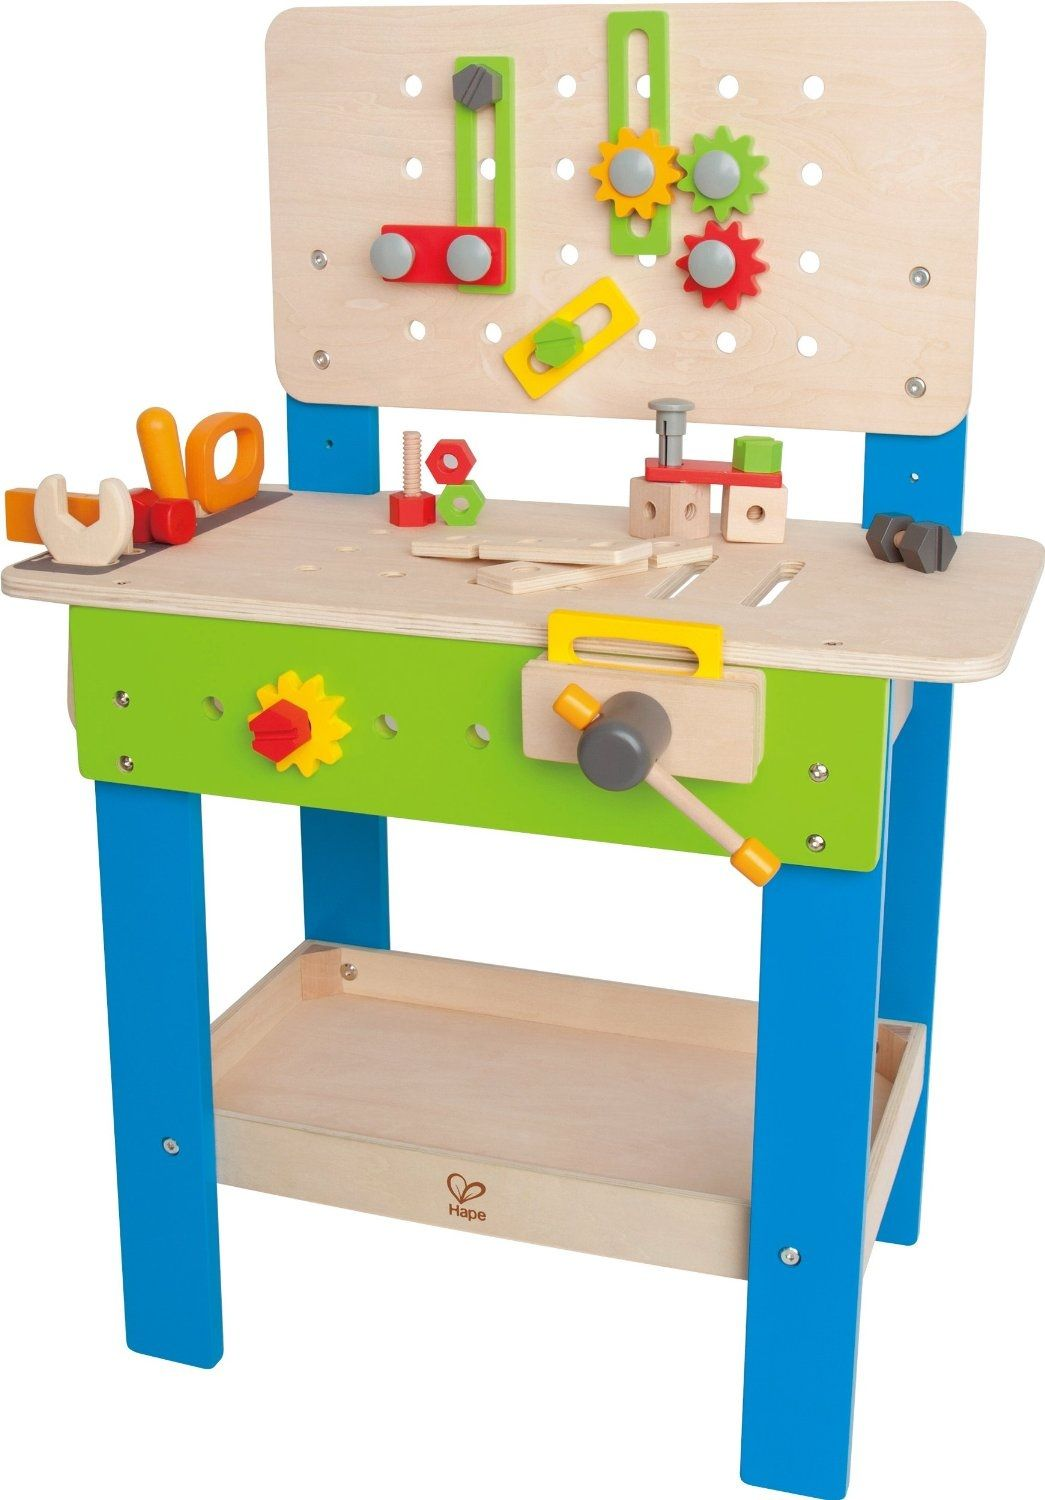 Werkbank Eichhorn Hape Toys Master Workbench With Tools Best Gift For 4 Year Old